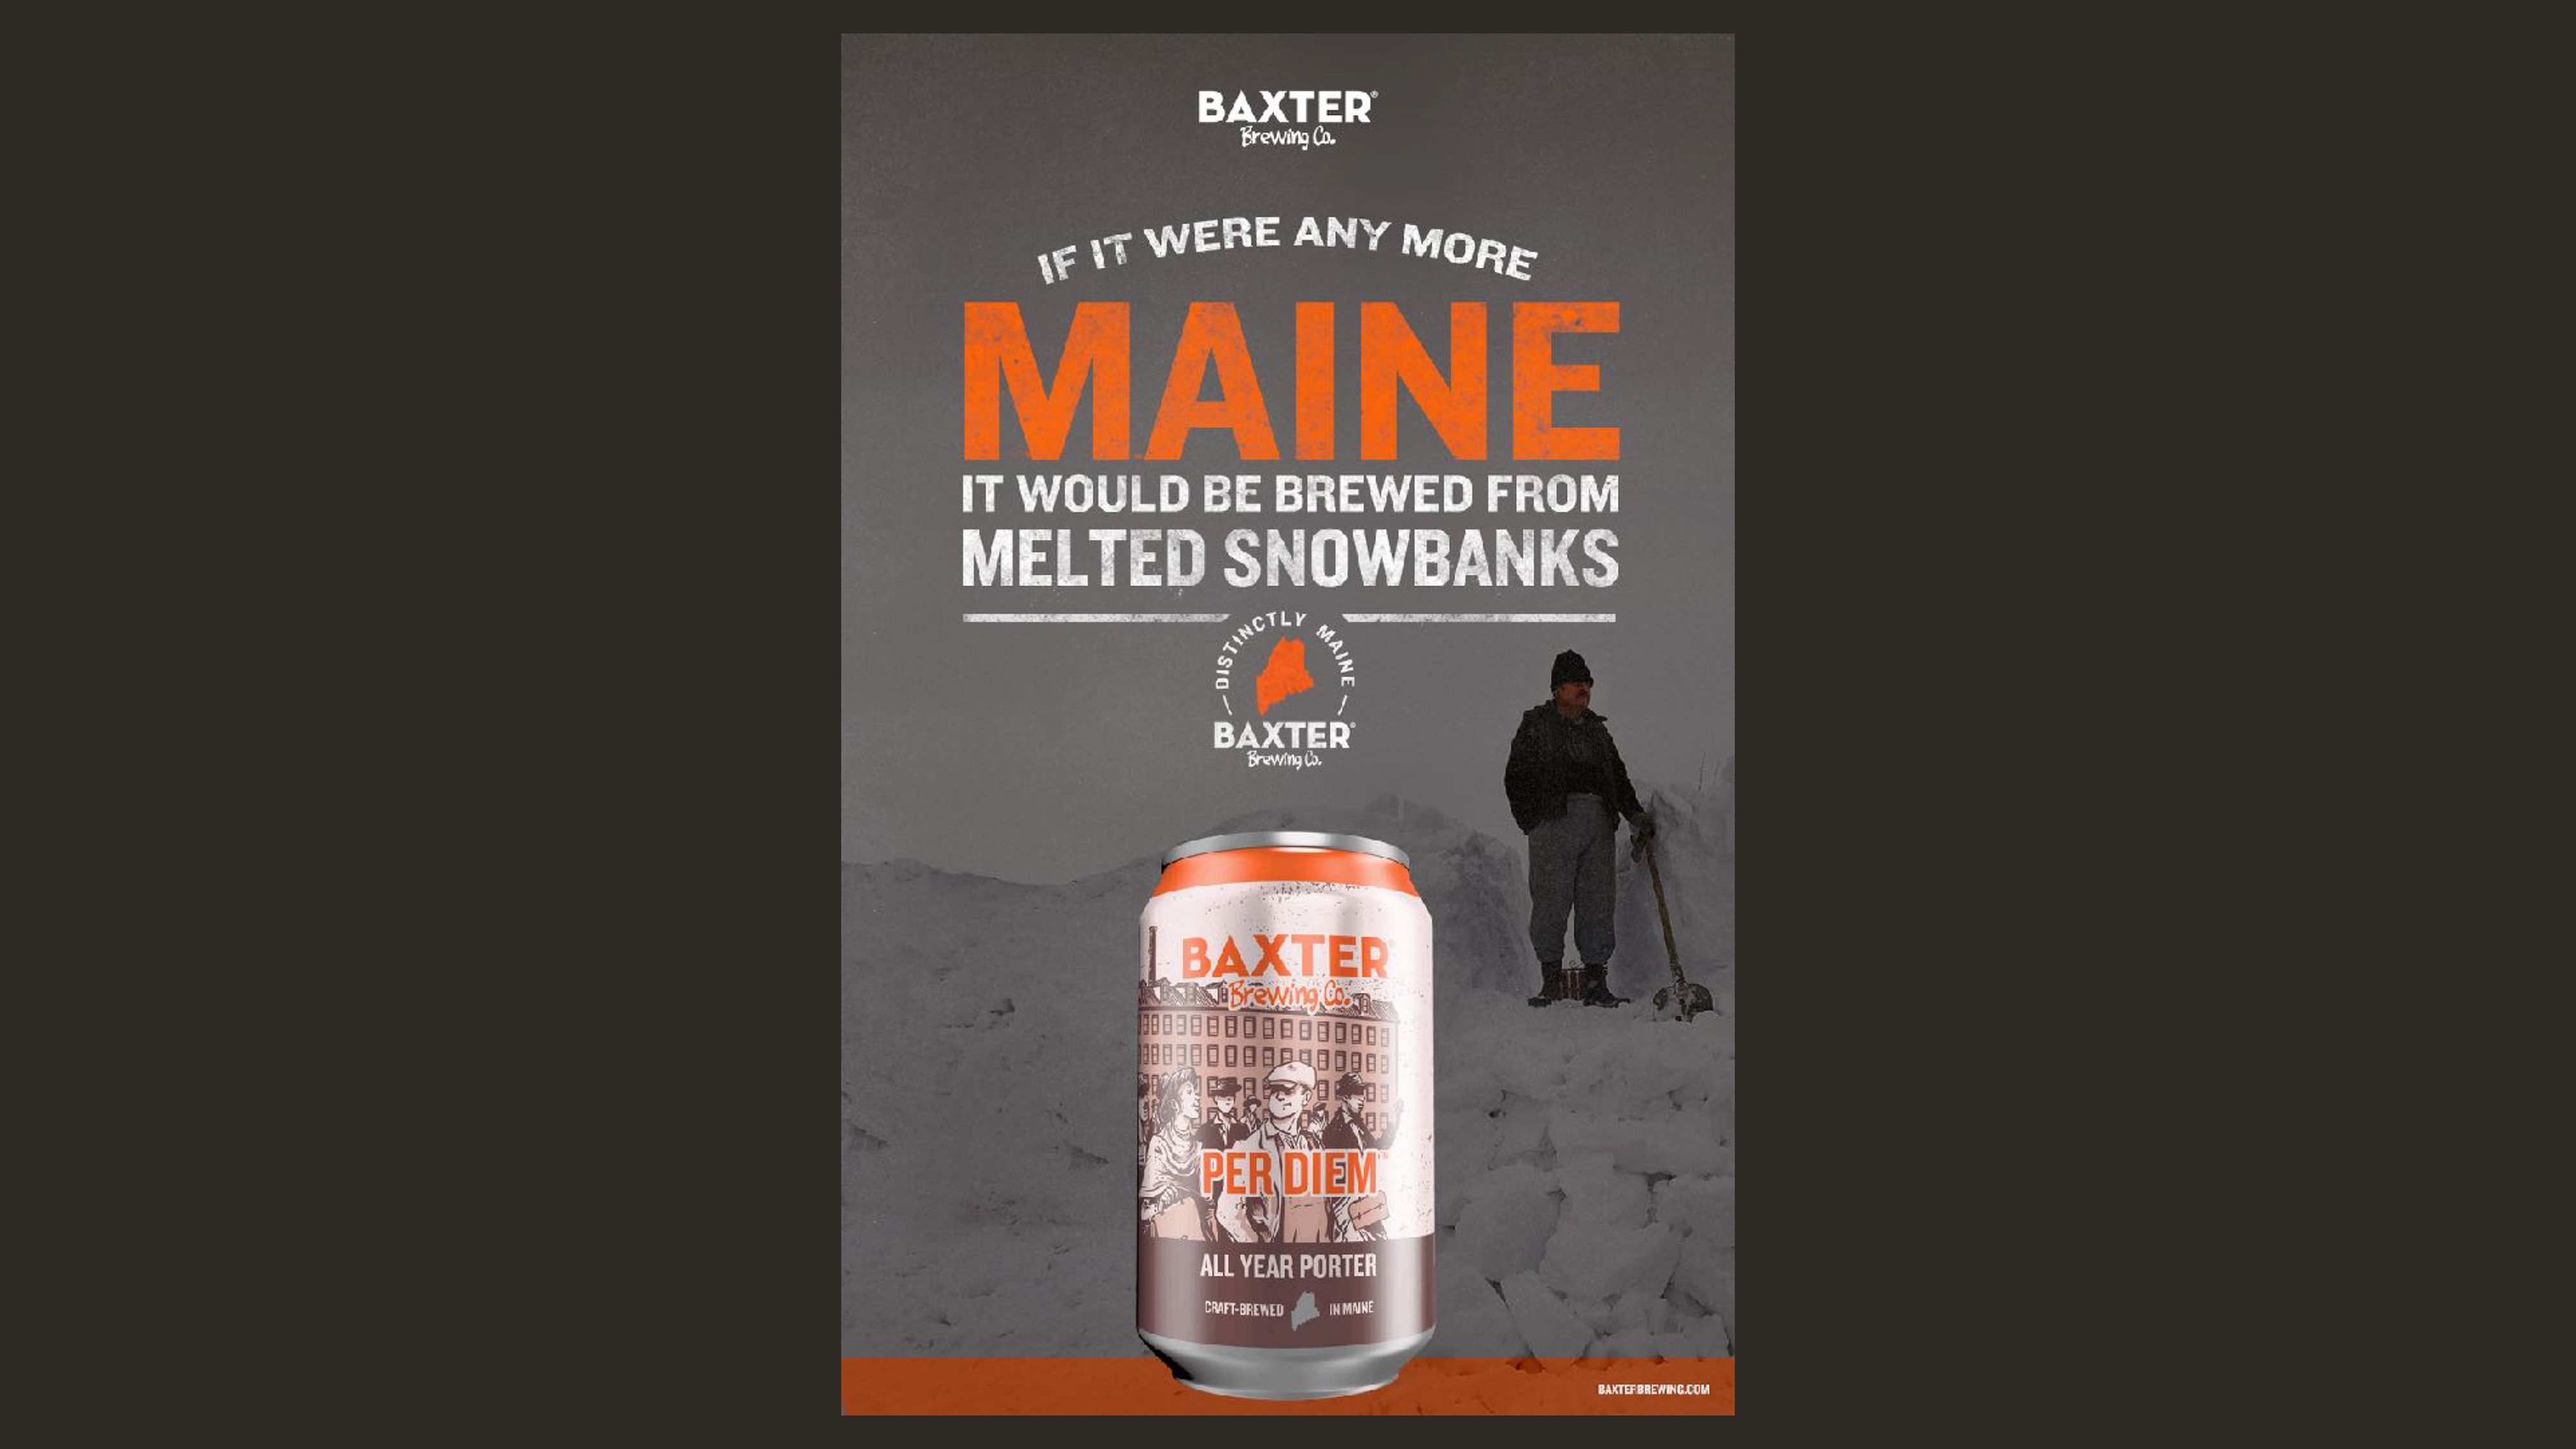 Baxter_D2_Distinctly_Maine_campaign_revisions_2017.09.13